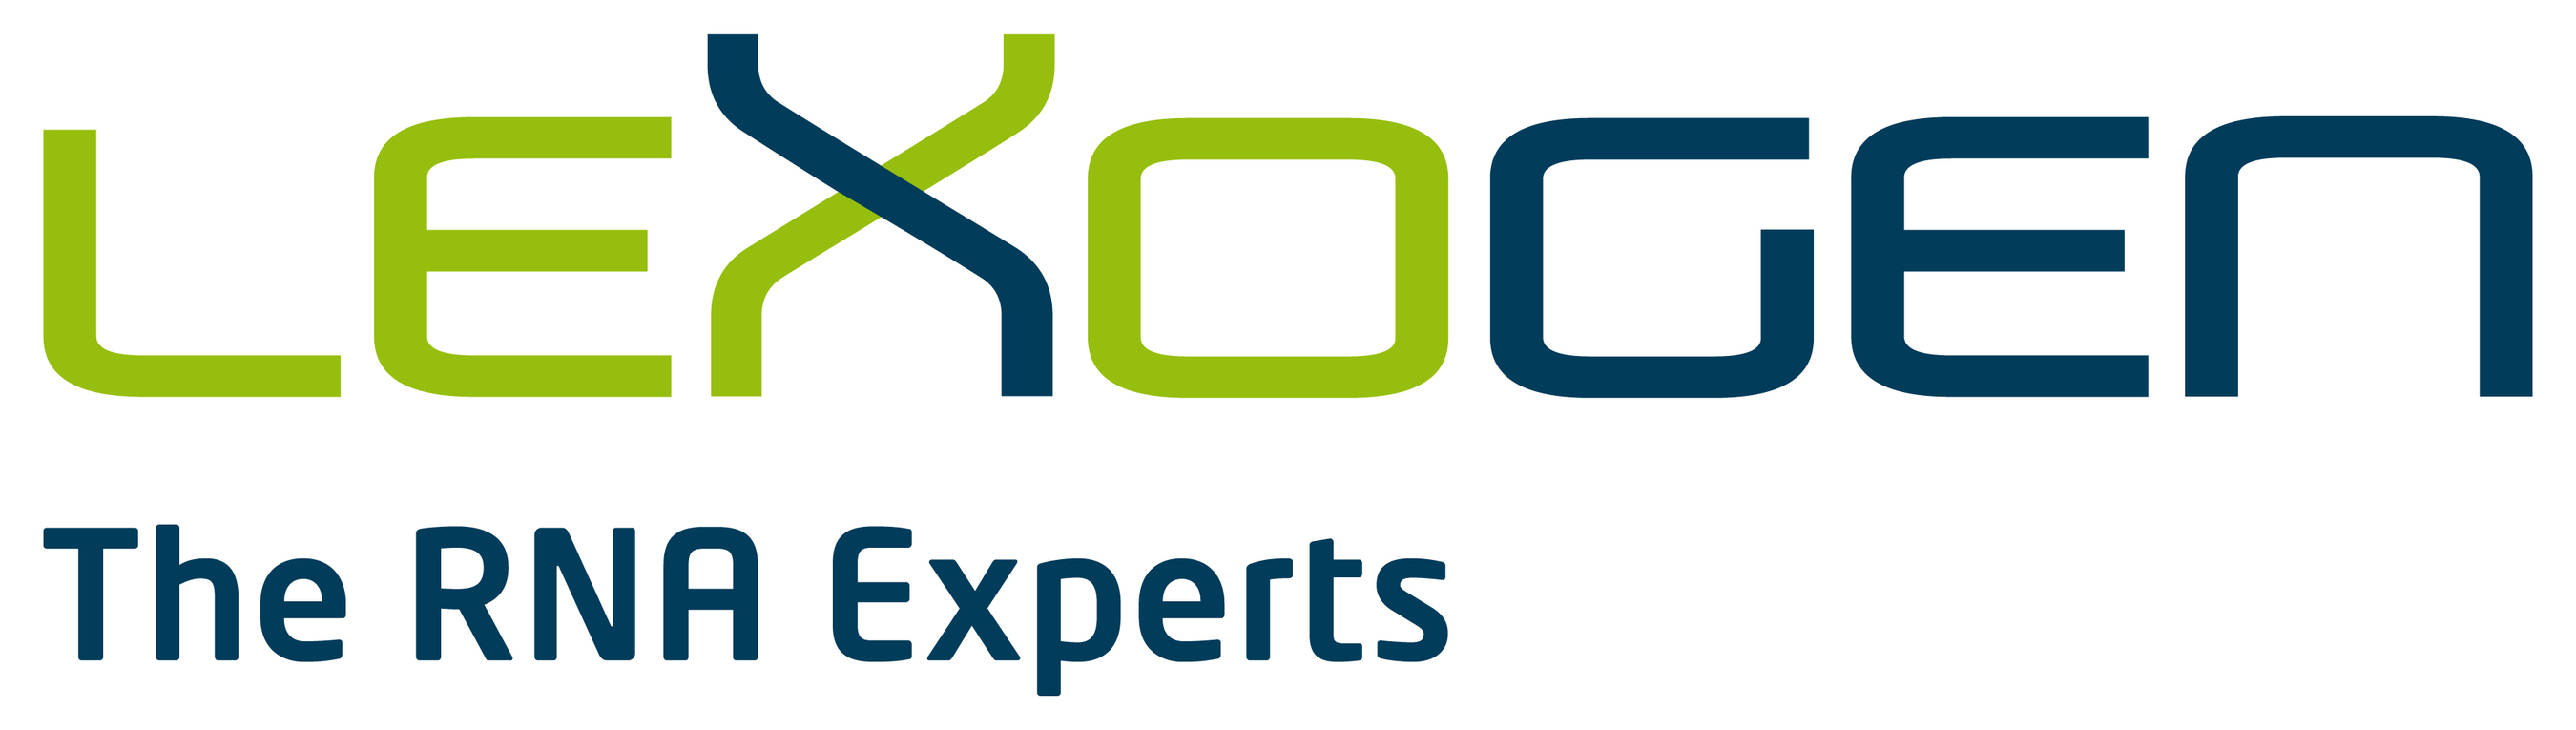 Lexogen is a transcriptomics and next generation sequencing company